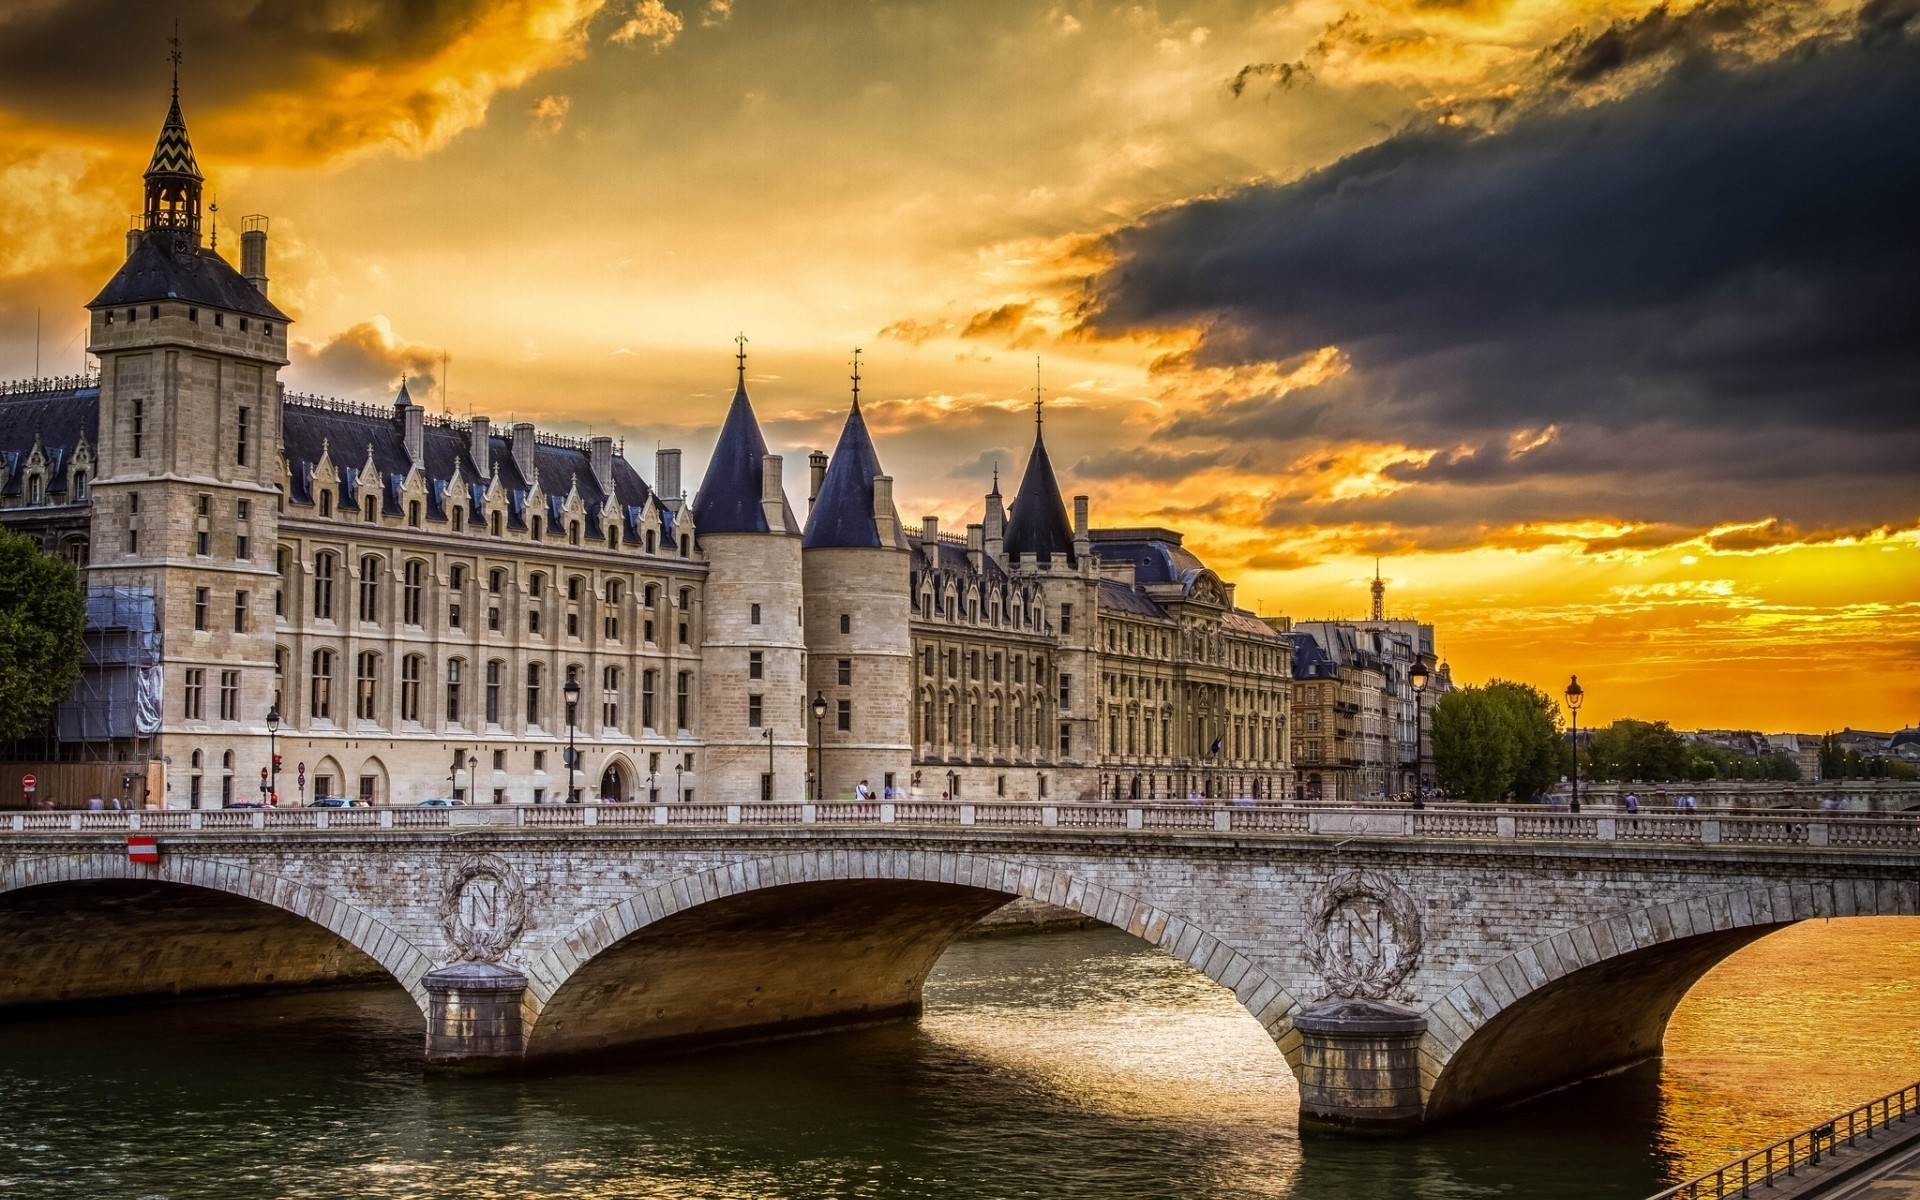 france architecture travel river bridge city building sky outdoors water castle old dusk tourism landmark ancient cityscape illuminated sunset reflection la conciergerie paris seine palace